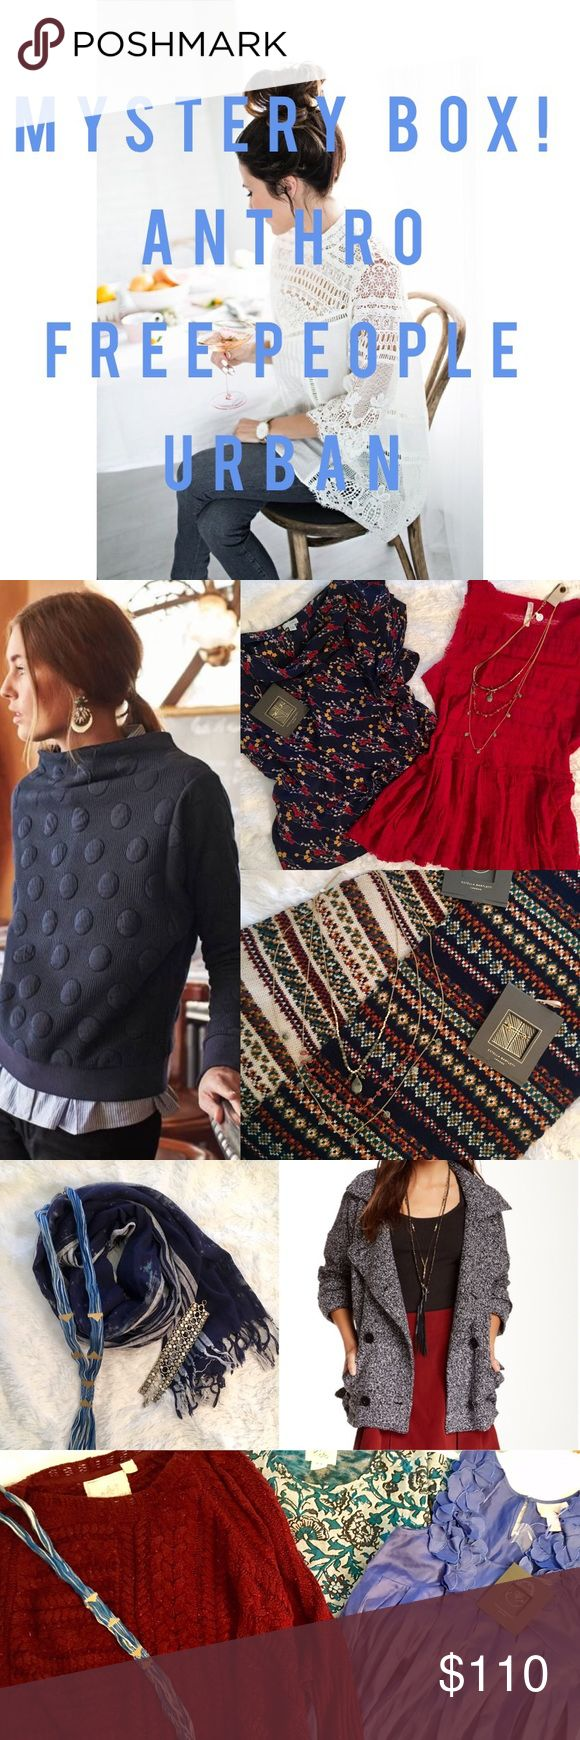 🎁Mystery Box: Anthro, Free People, Urban! Mystery box of NWOT (never worn!)/NWT items from Anthro, Free People and Urban! 🎀 Each box comes w/ 4 items which could include: Blouses/Sweaters - Cardigans/Ponchos - Jackets/Coats - Dresses - Skirts - Jewelry/Scarves. Pics shown are some of the items! Don't love the box? Posh doesn't support returns, but each item can easily be resold since they are new 🎀 List your size for: 1. General S-L, 2. Dress/skirt 0-10, 3. Bust/waist measurements. 🎀…